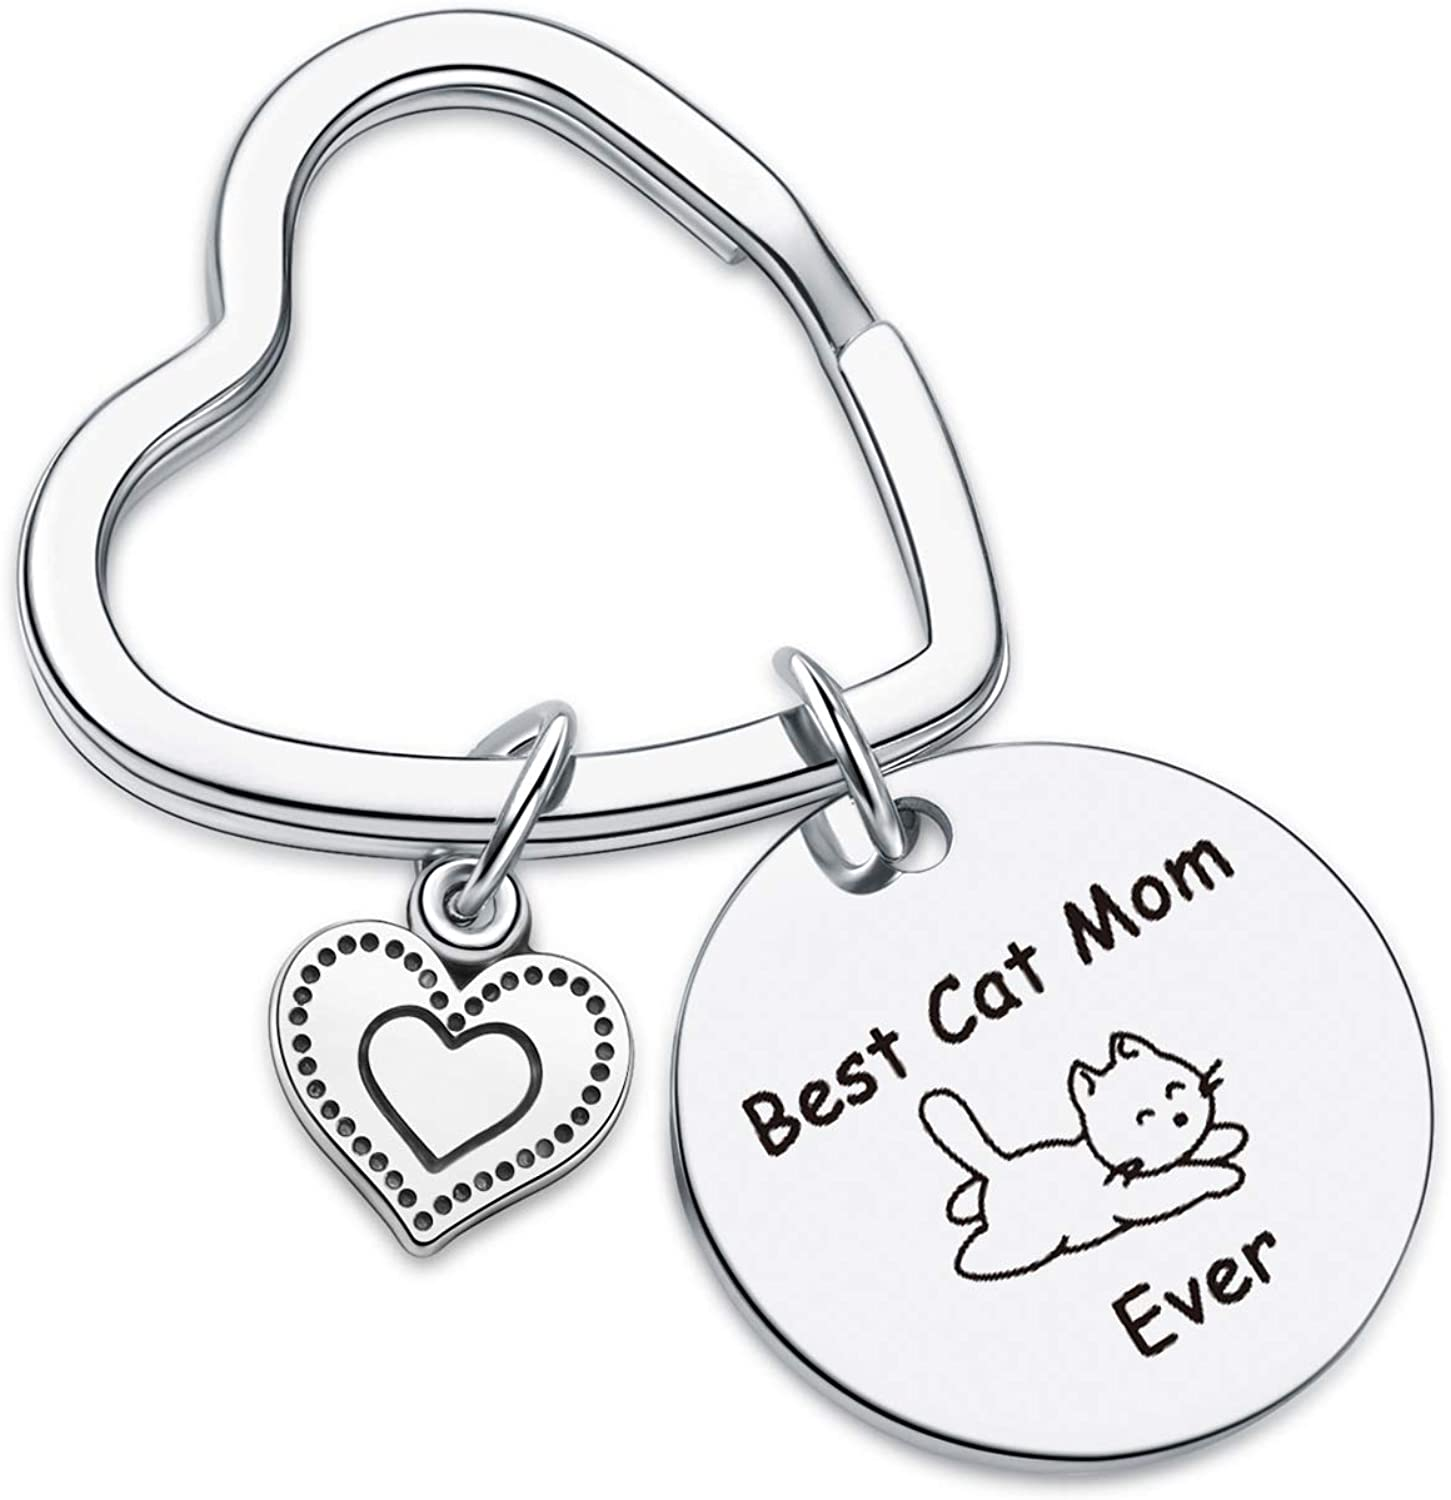 7RVZM Cat Mom Jewelry veterinarian Keychain Pet Lover Gift Mothers Day Jewelry Best Friend Gift Cat Person Keychain